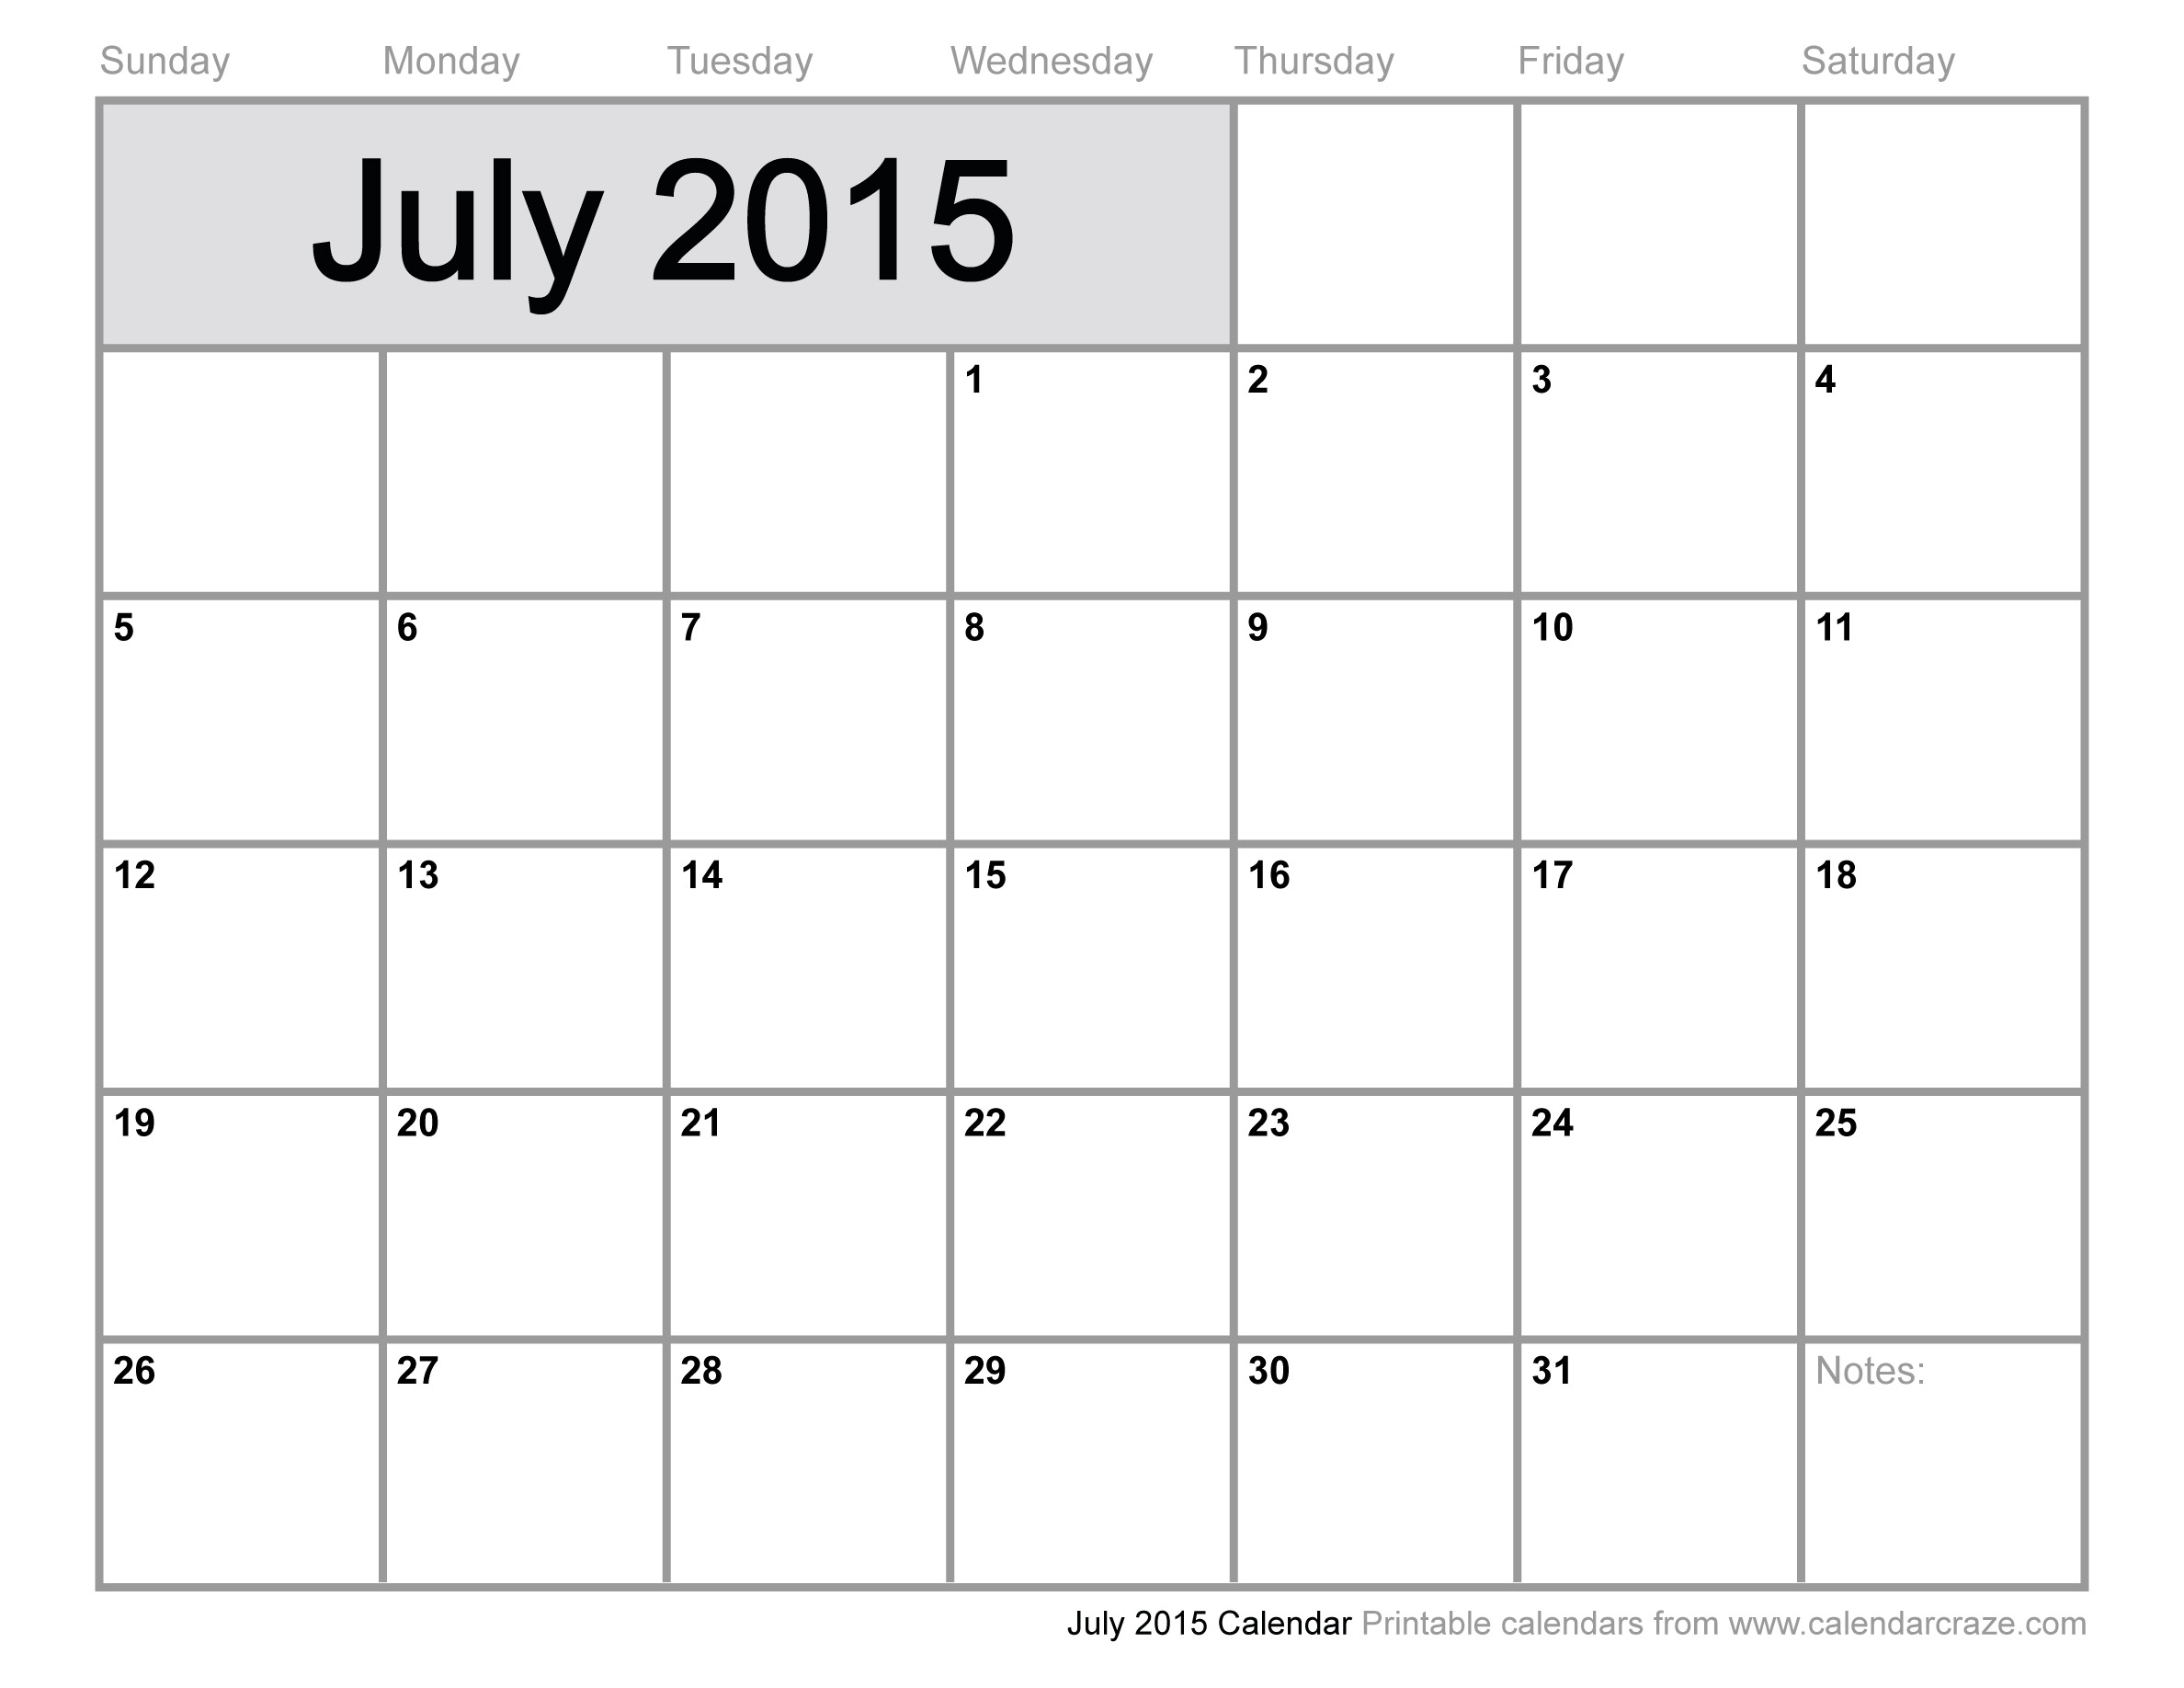 See Printable 2015 Monthly Calendar Template July, July 2015 Calendar ...